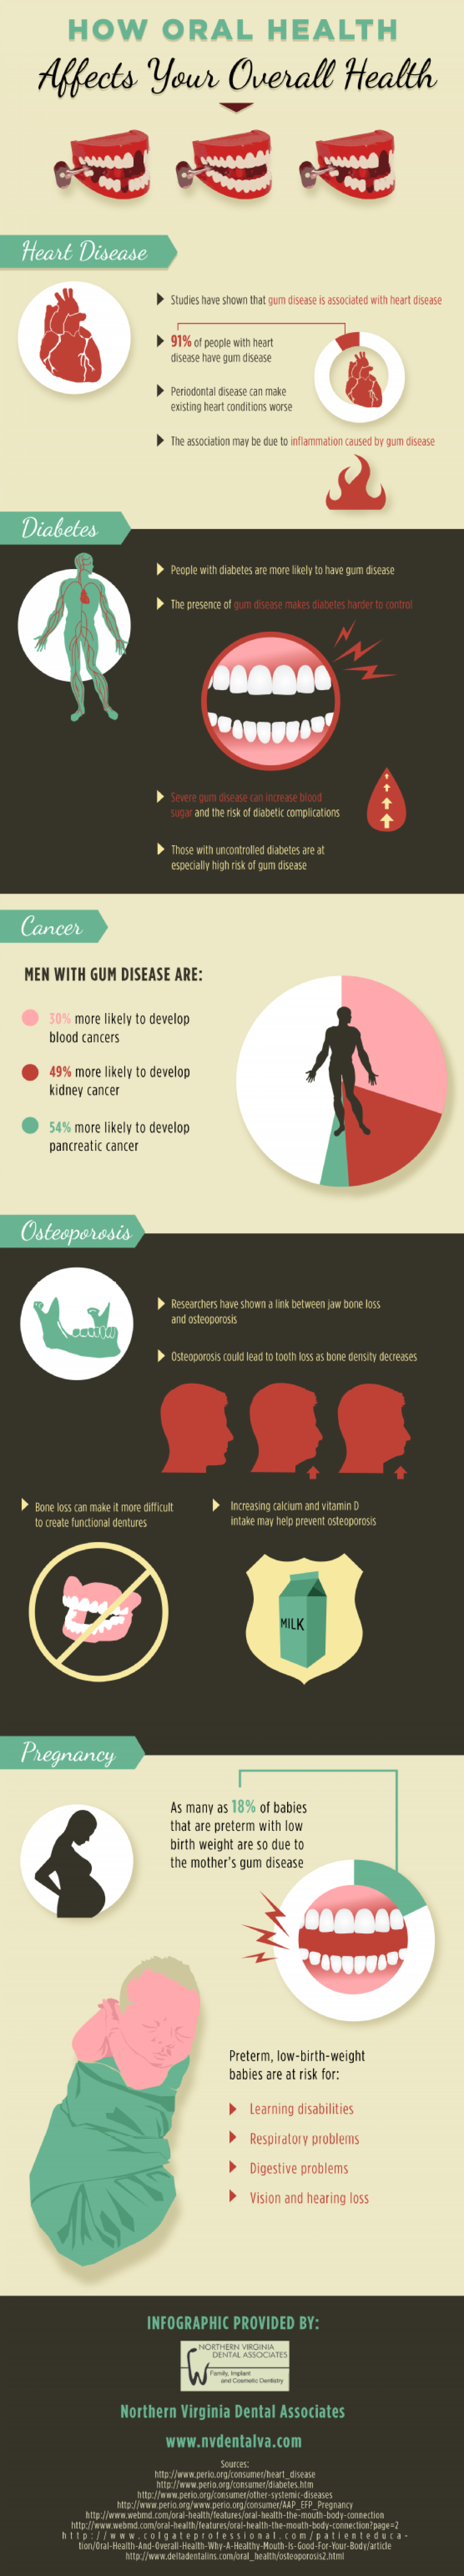 How Oral Health Affects Your Overall Health Infographic